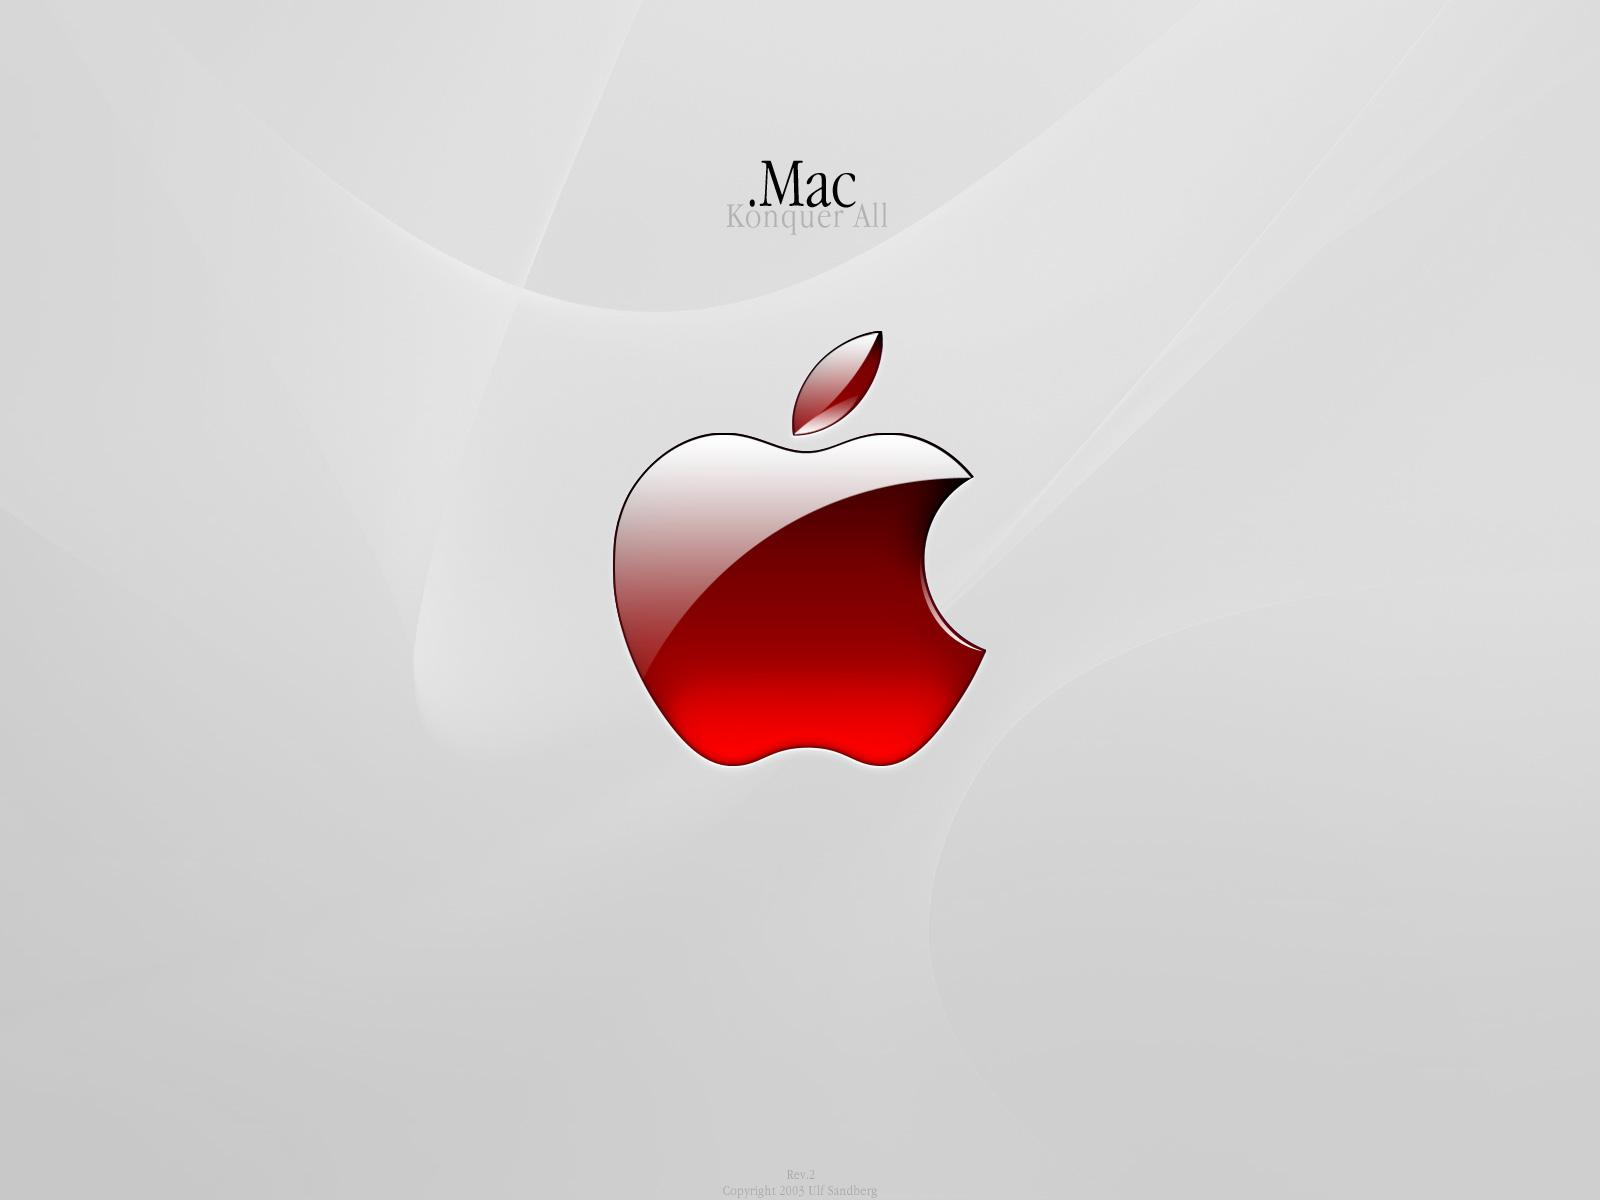 mac apple wallpapers hd apple wallpapers hd mac apple wallpapers 1600x1200